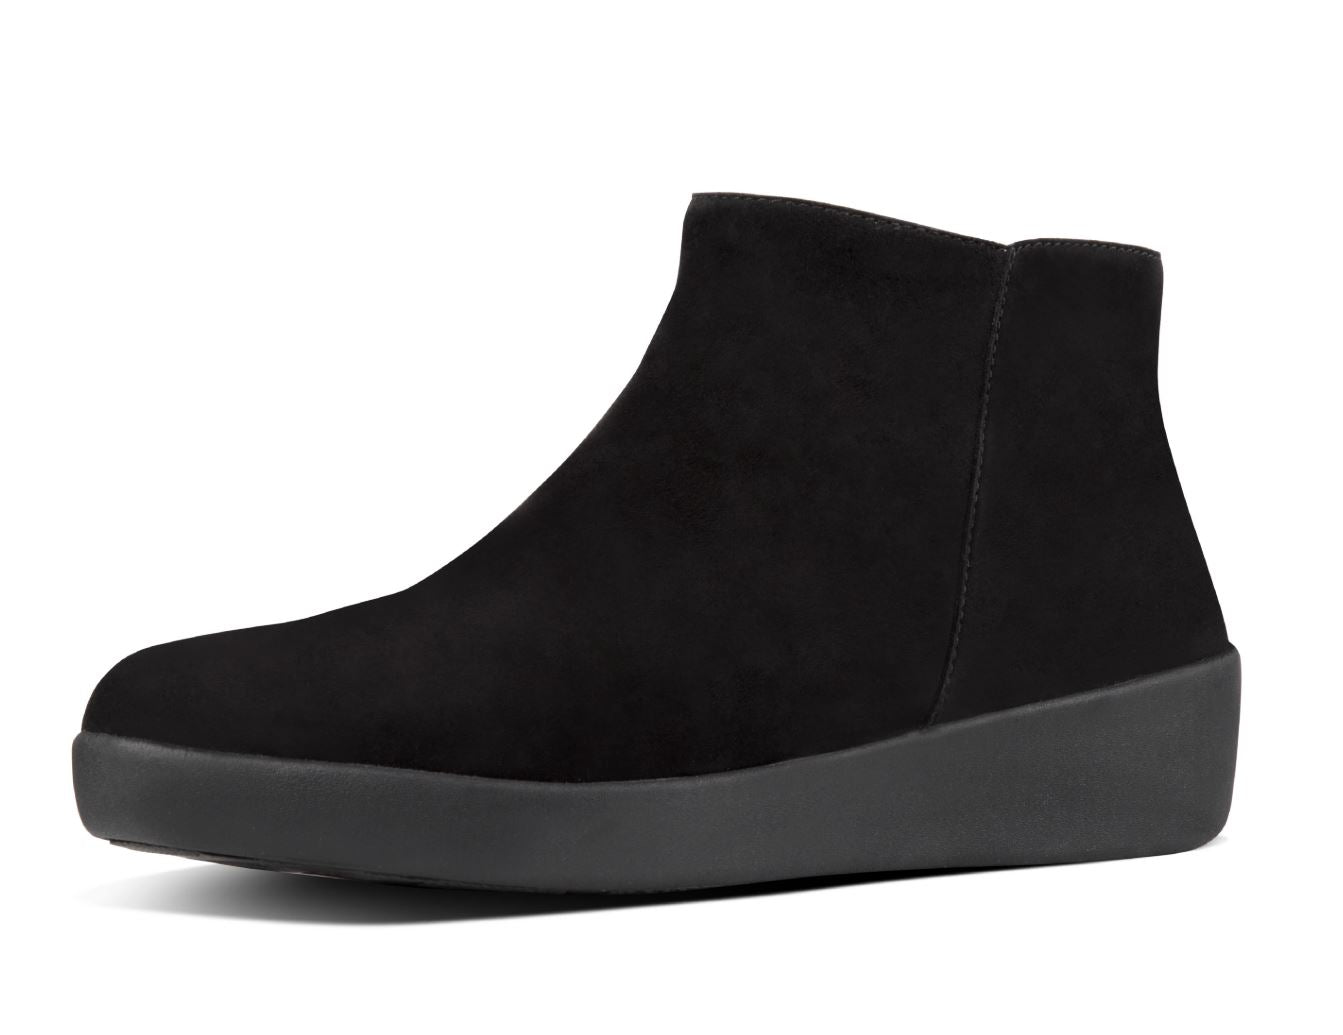 SUMI - Suede Ankle Boots